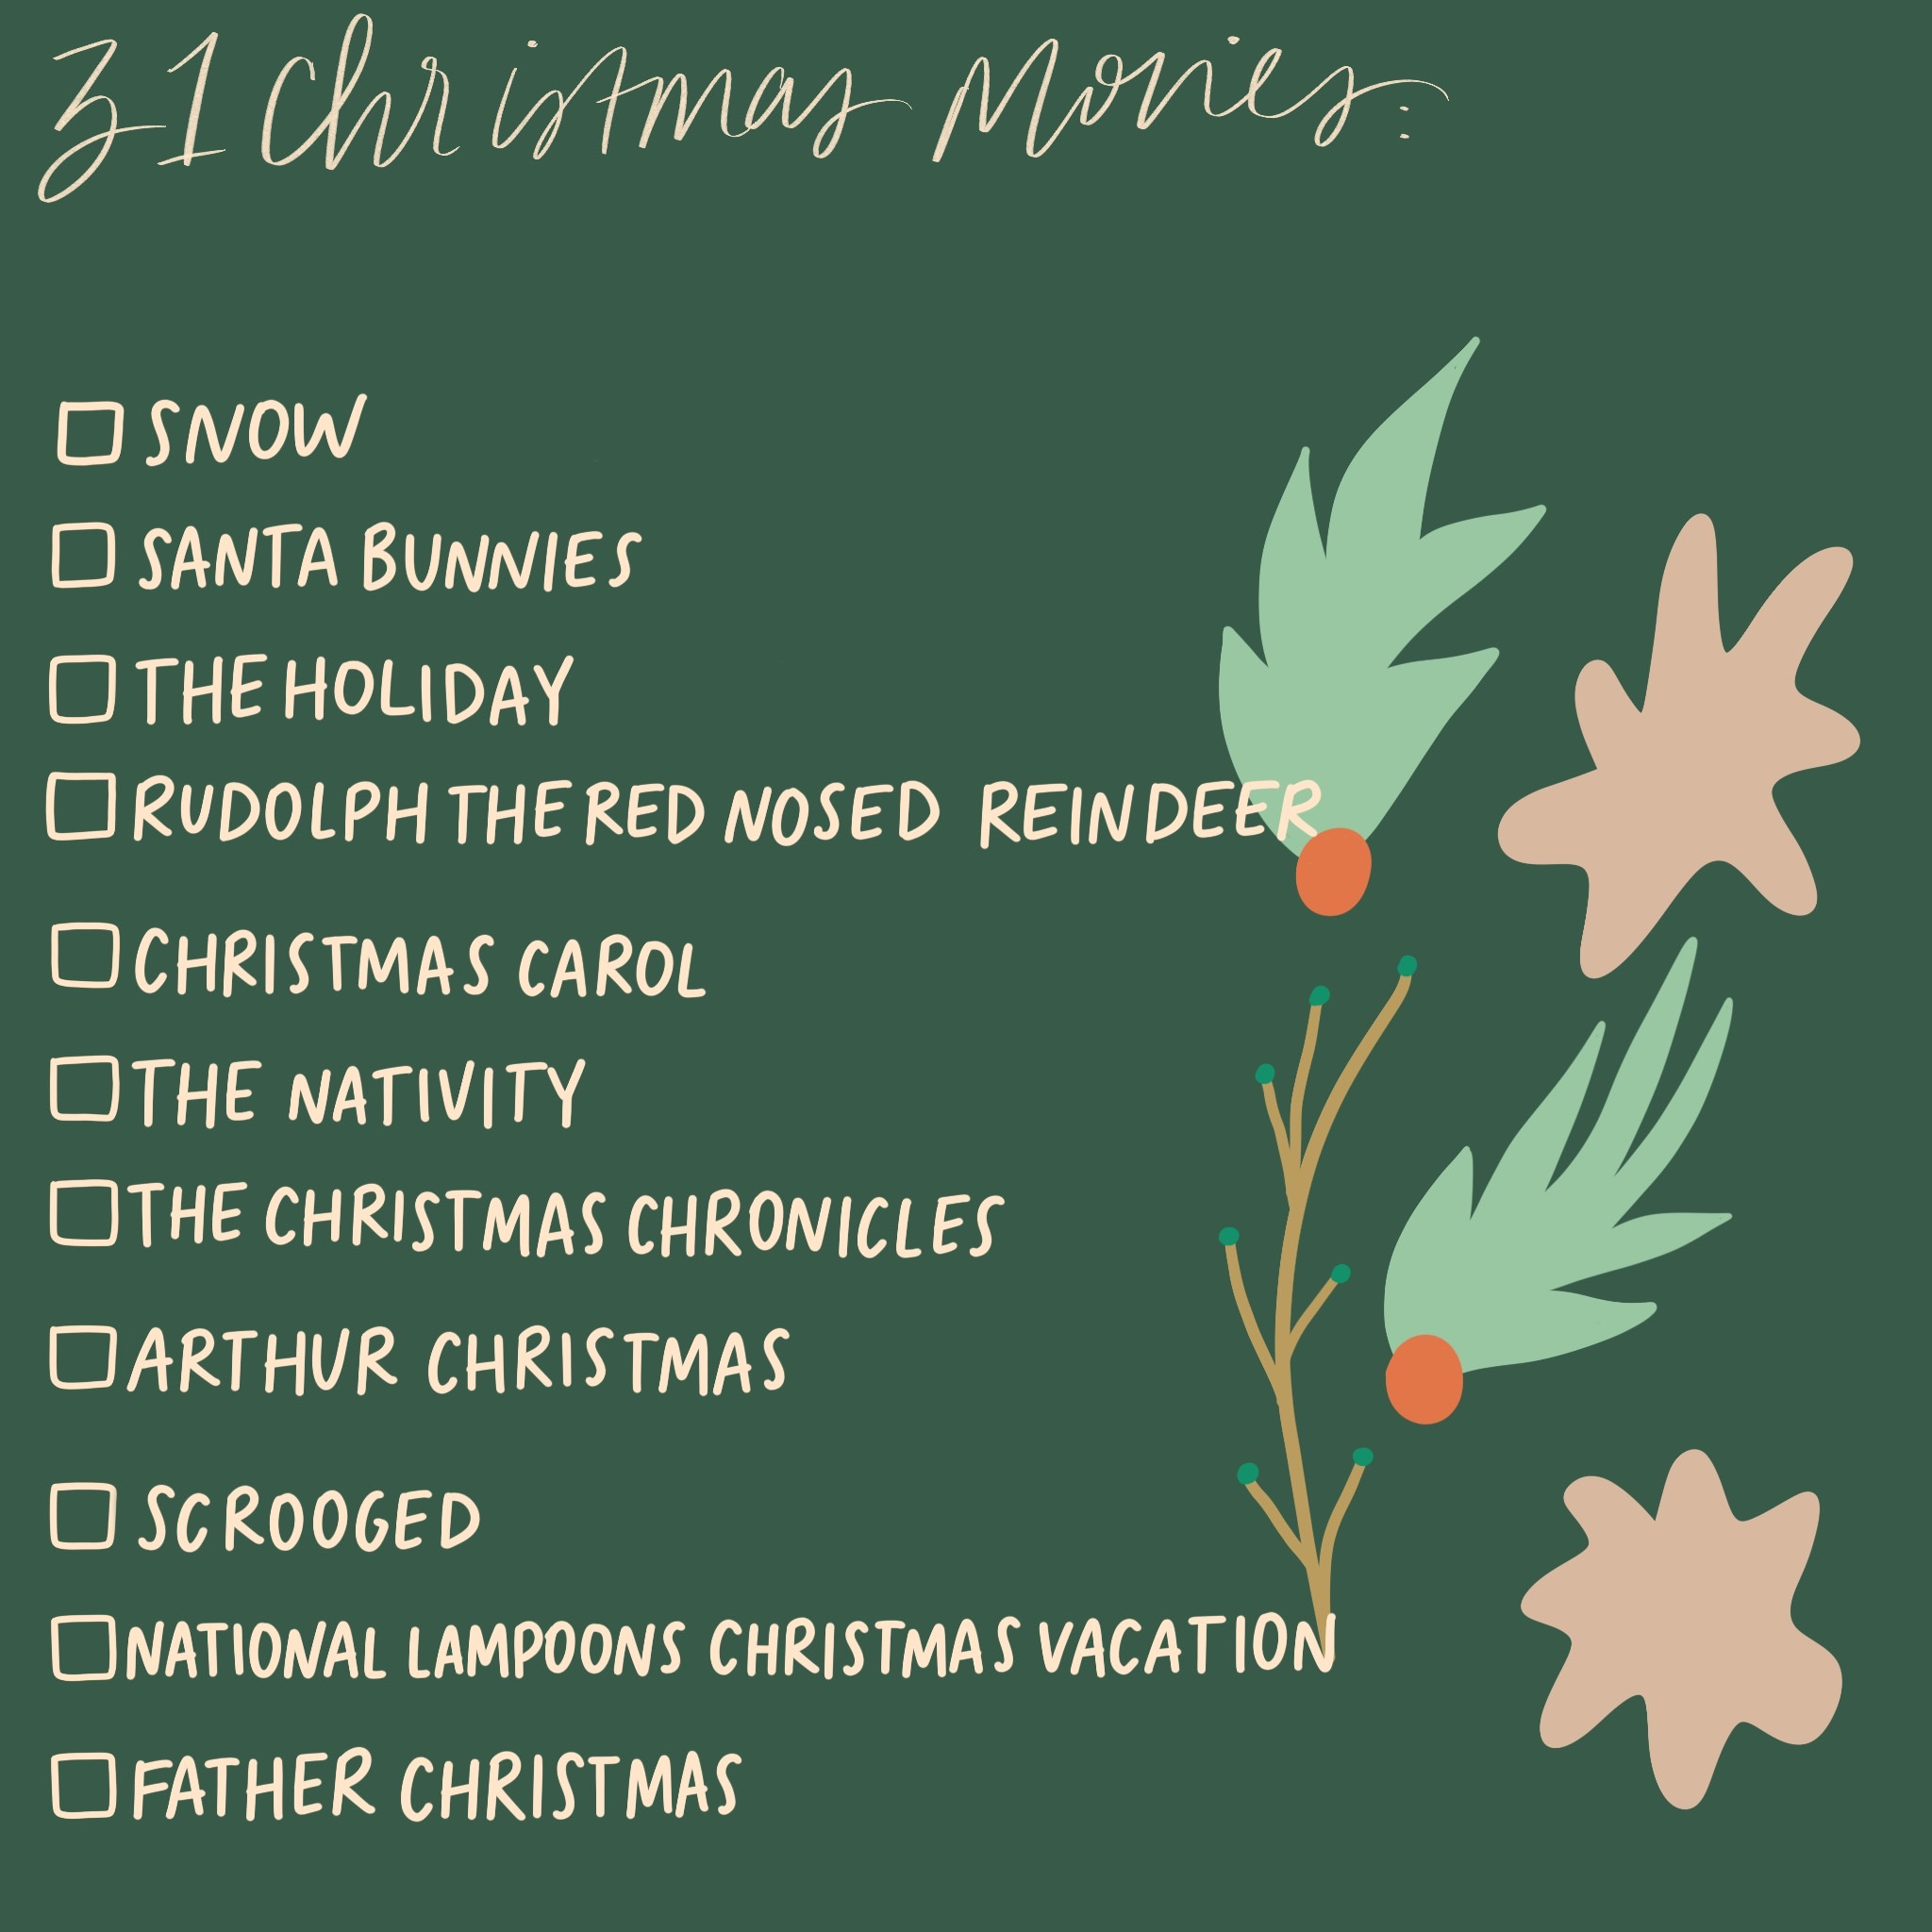 Ruthie Ridley Blog Christmas Movie List